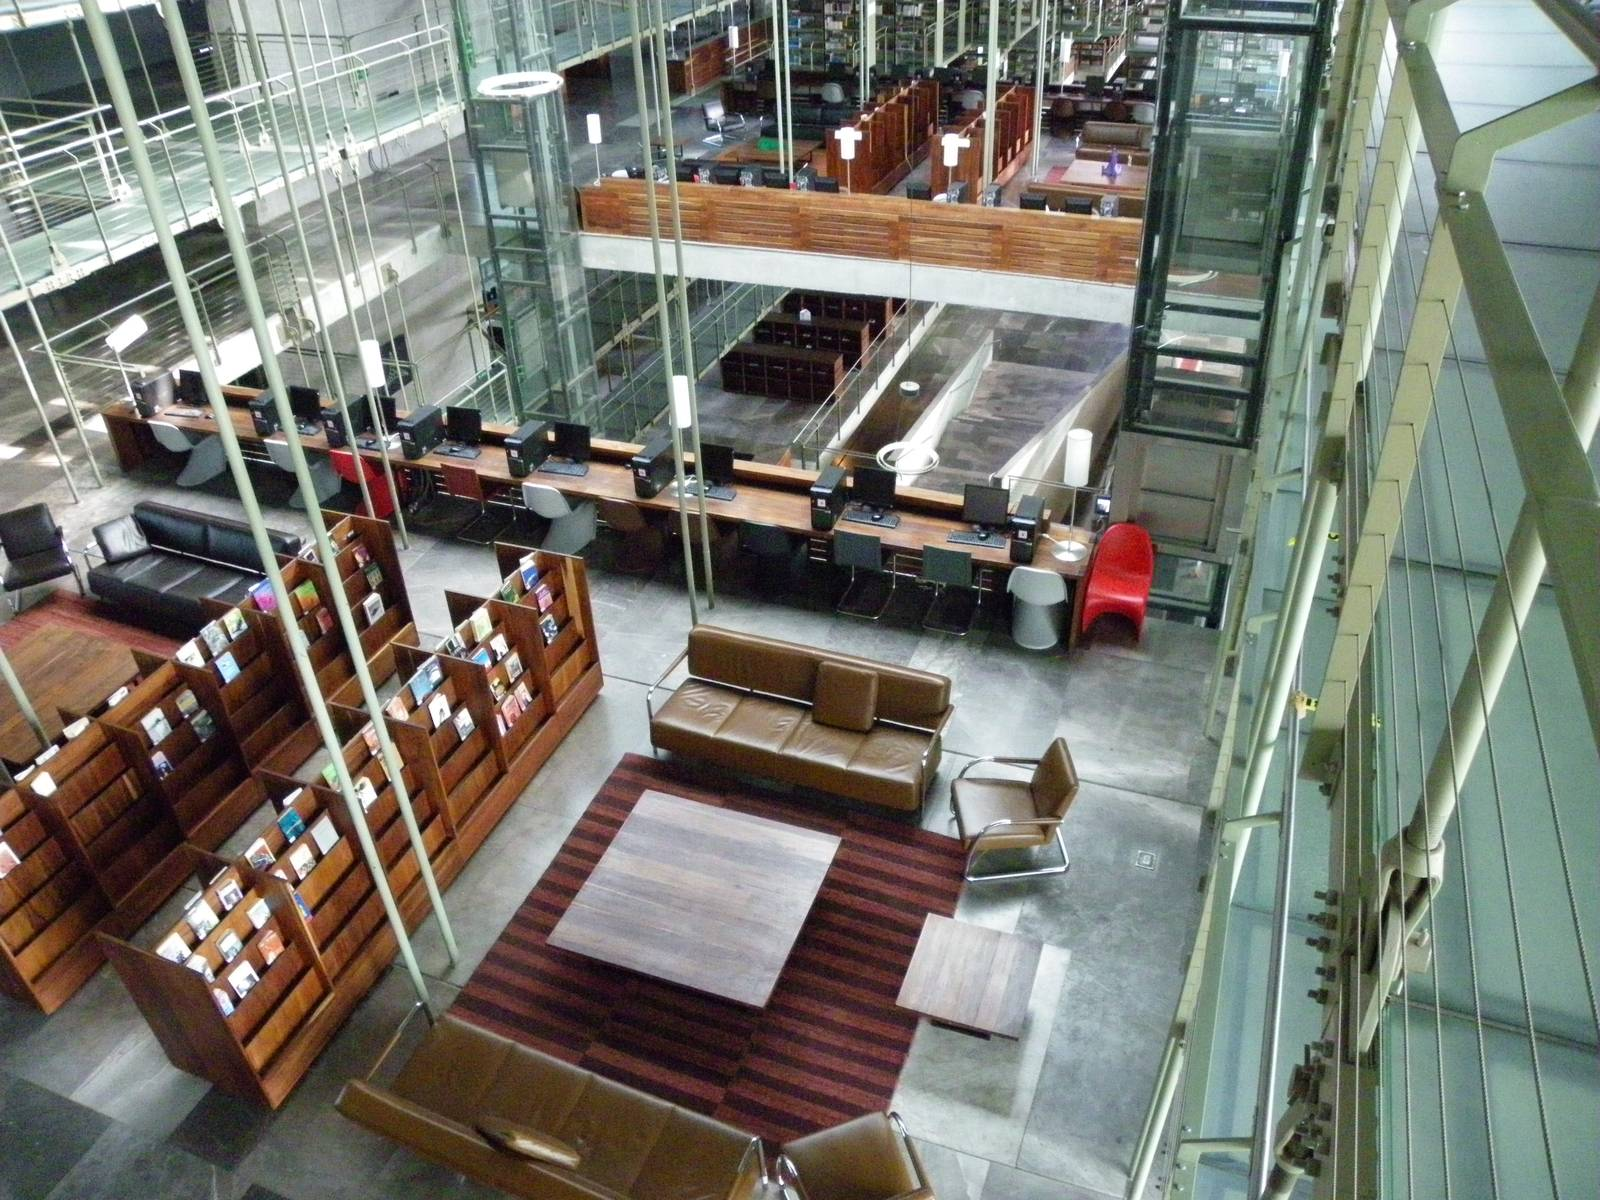 biblioteca vasconcelos5 Biblioteca Vasconcelos   Public Library in Mexico City